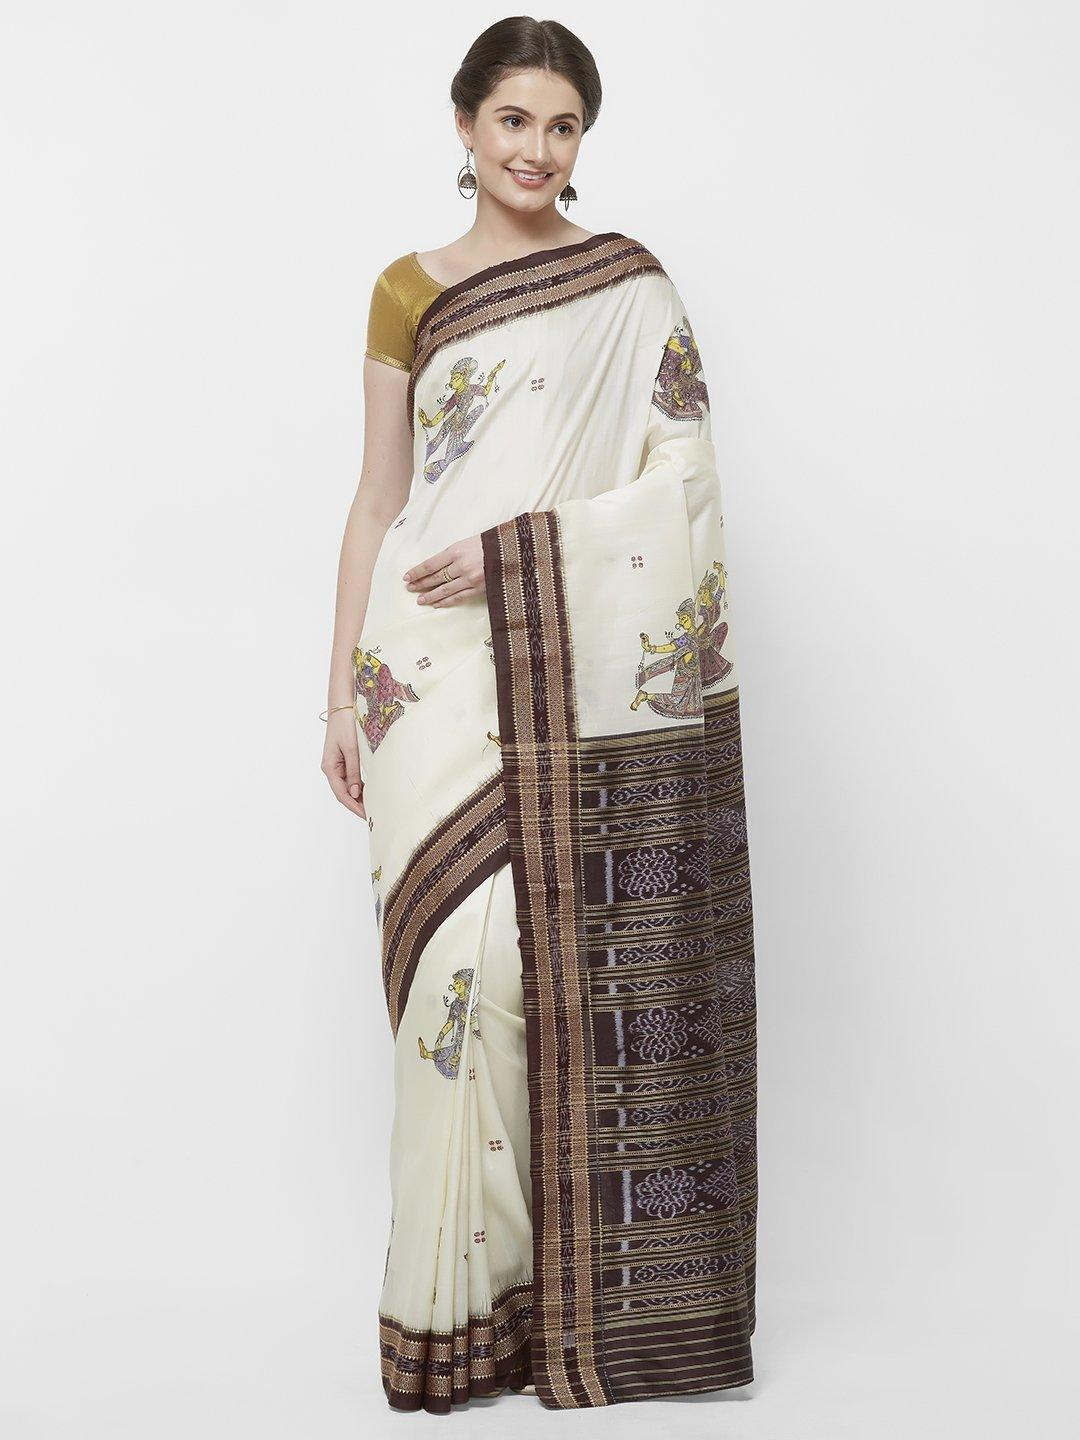 CraftsCollection.in -Offwhite Odisha Sambalpuri Silk Saree with Pattachitra motifs